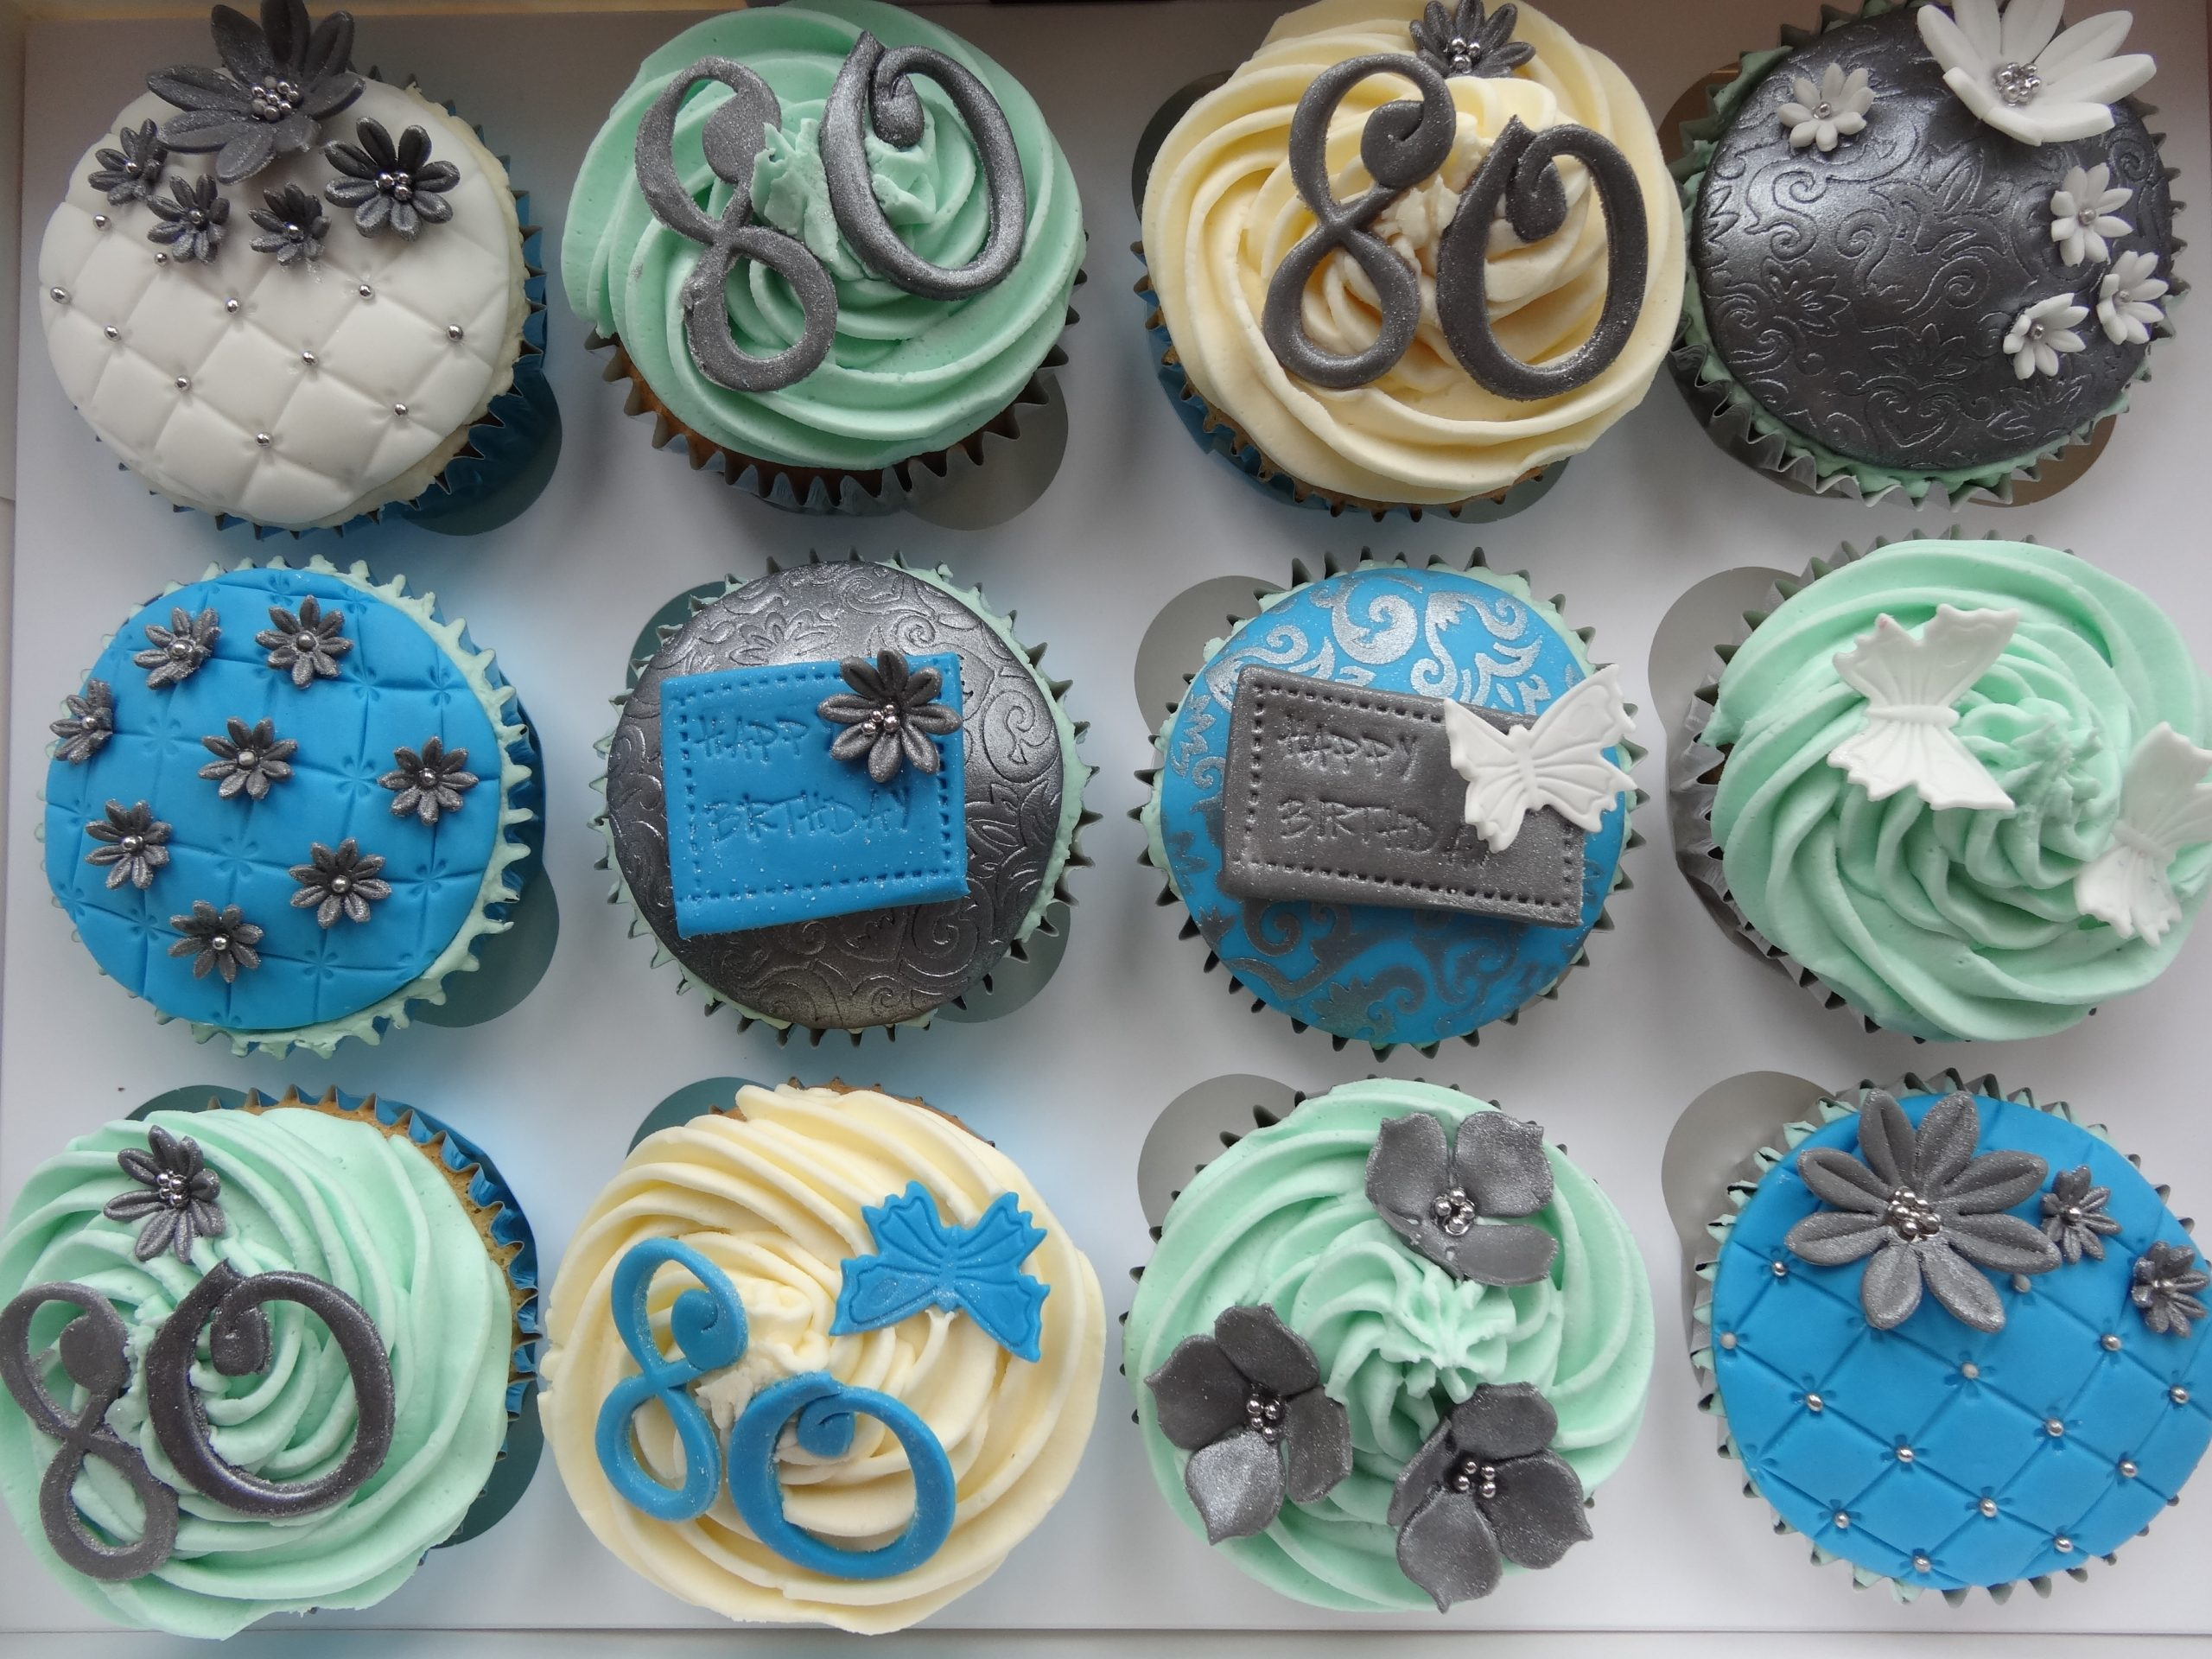 Silver and blue cupcakes